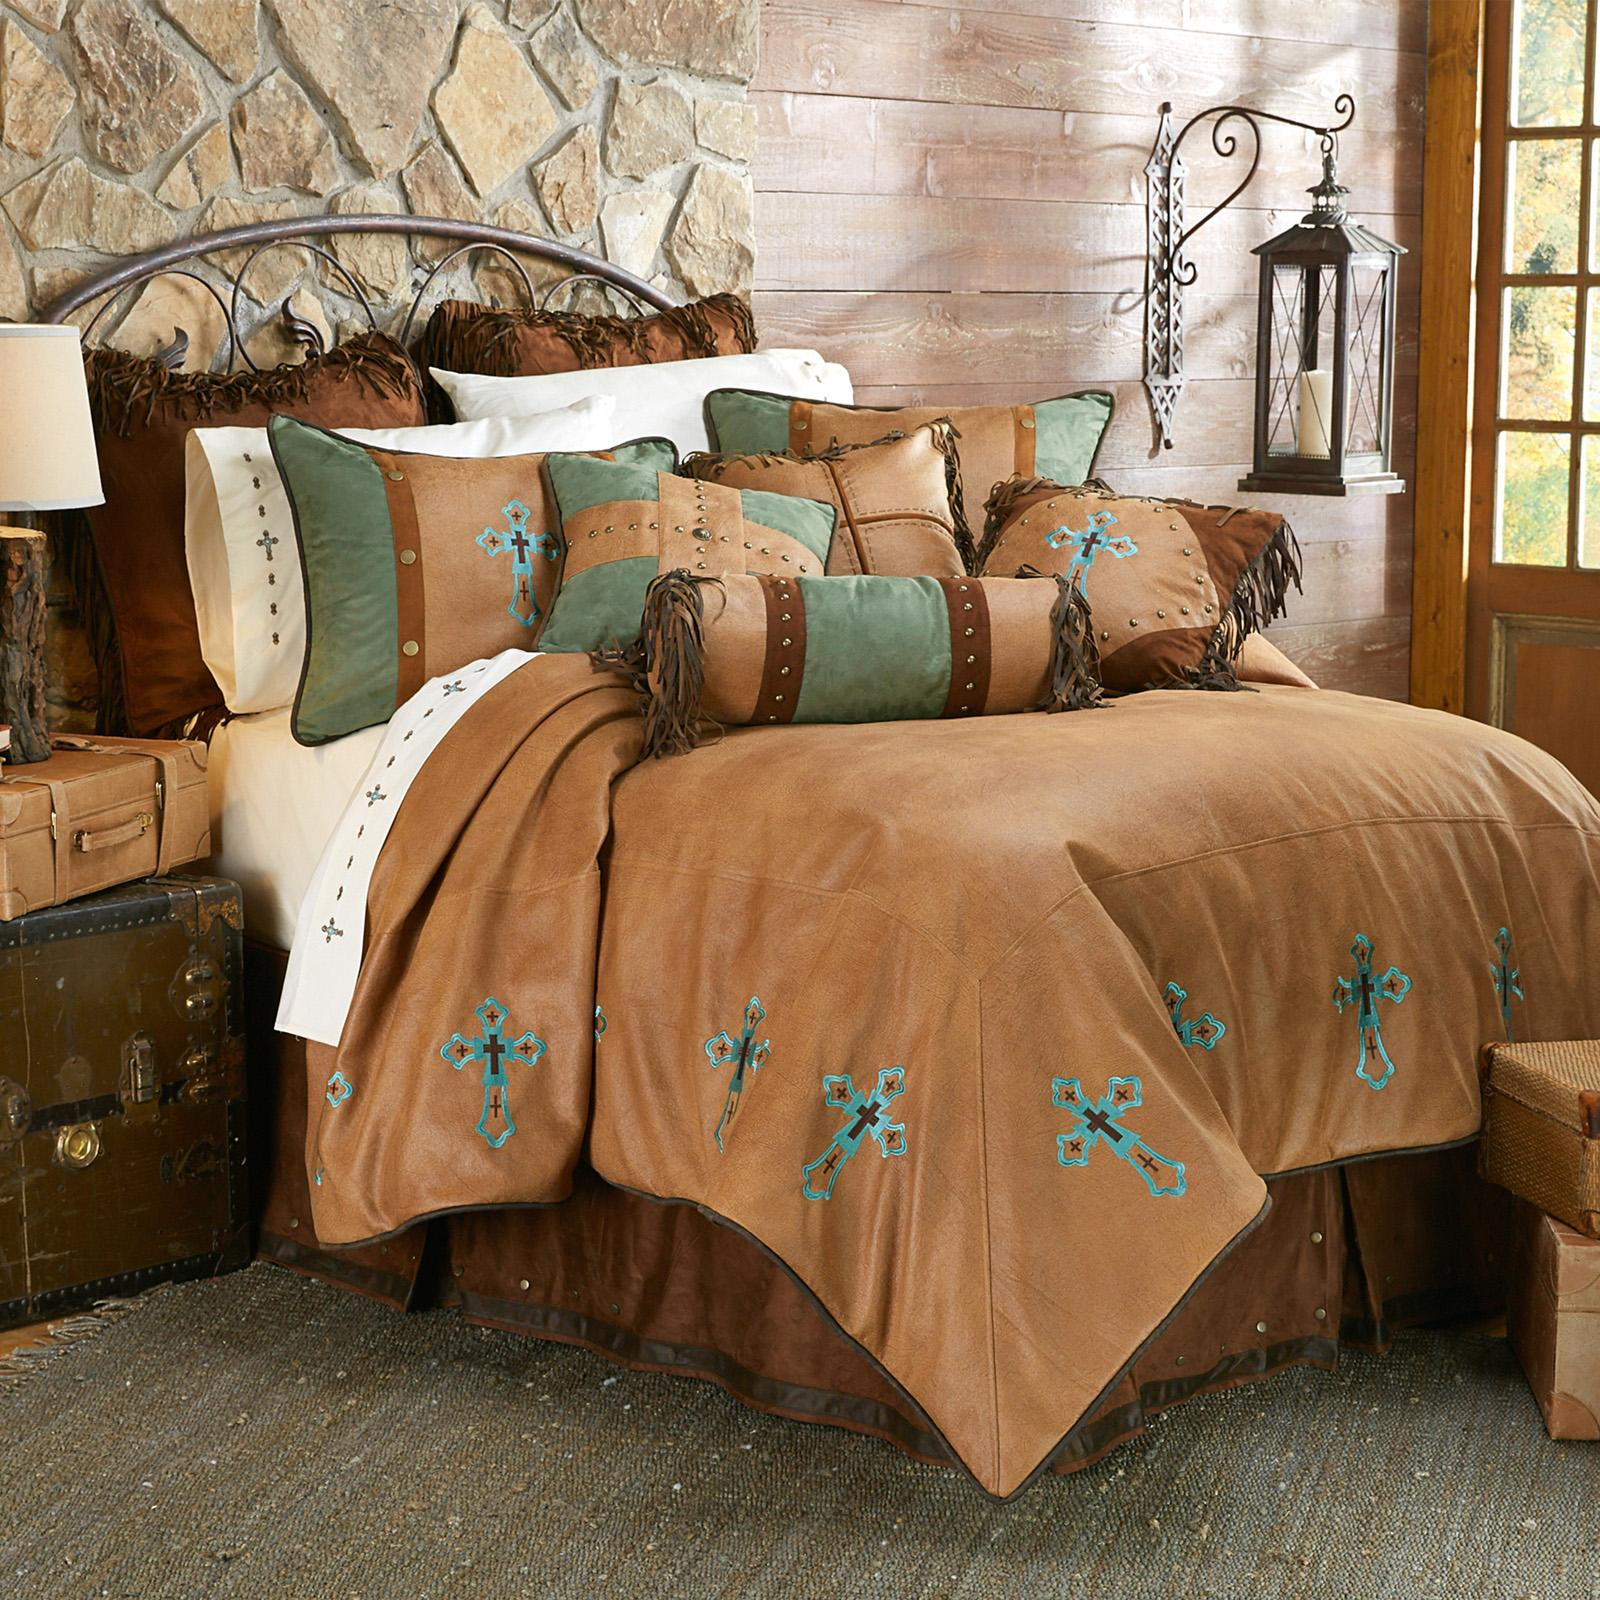 Las Cruses Ii Comforter Set By Hiend Accents Ws4183 Sk Oc